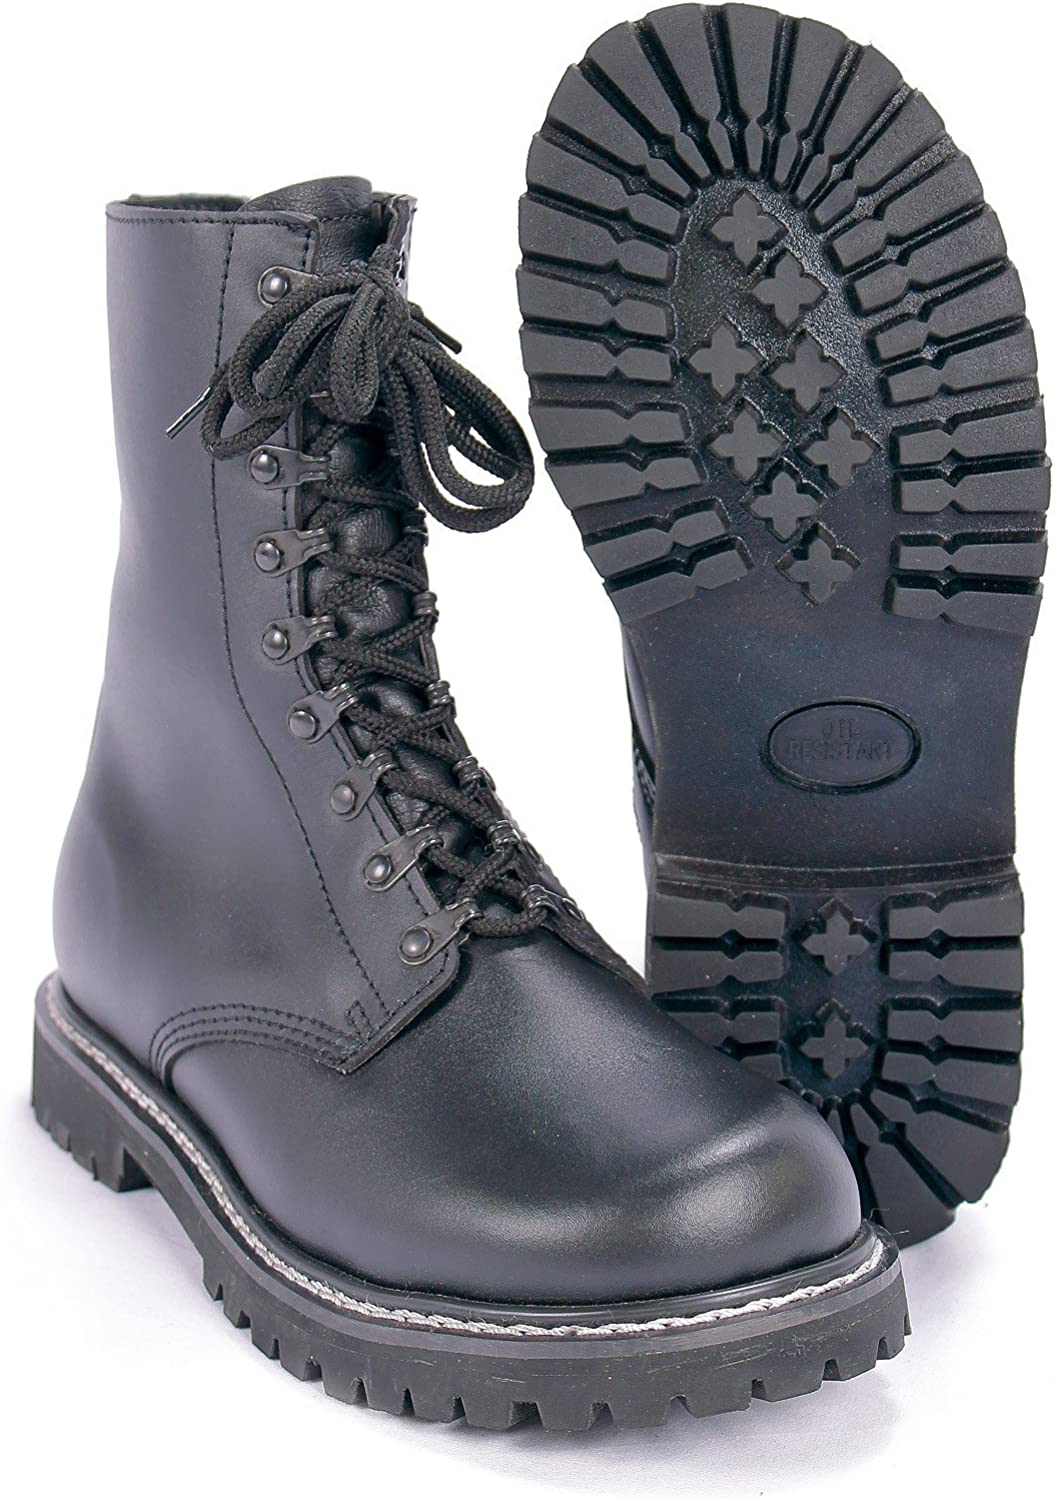 Mil-tec Lined German Pilots Style Boots with Side Zip, Size- UK Size 7 (Euro 41), color- Black